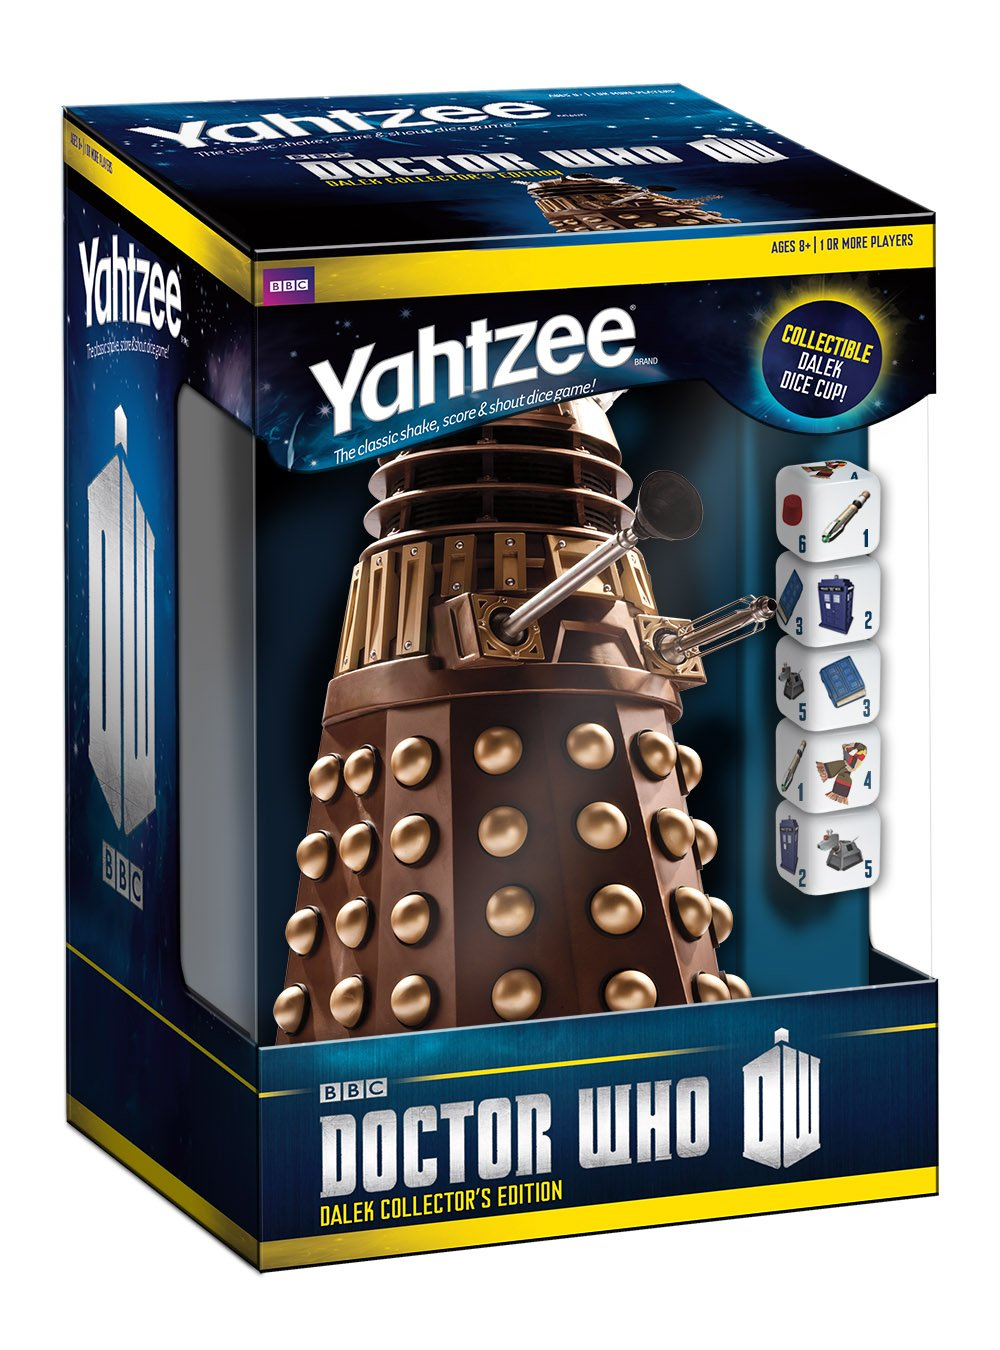 Doctor Who Dalek Yahtzee Collectors Edition Board Game